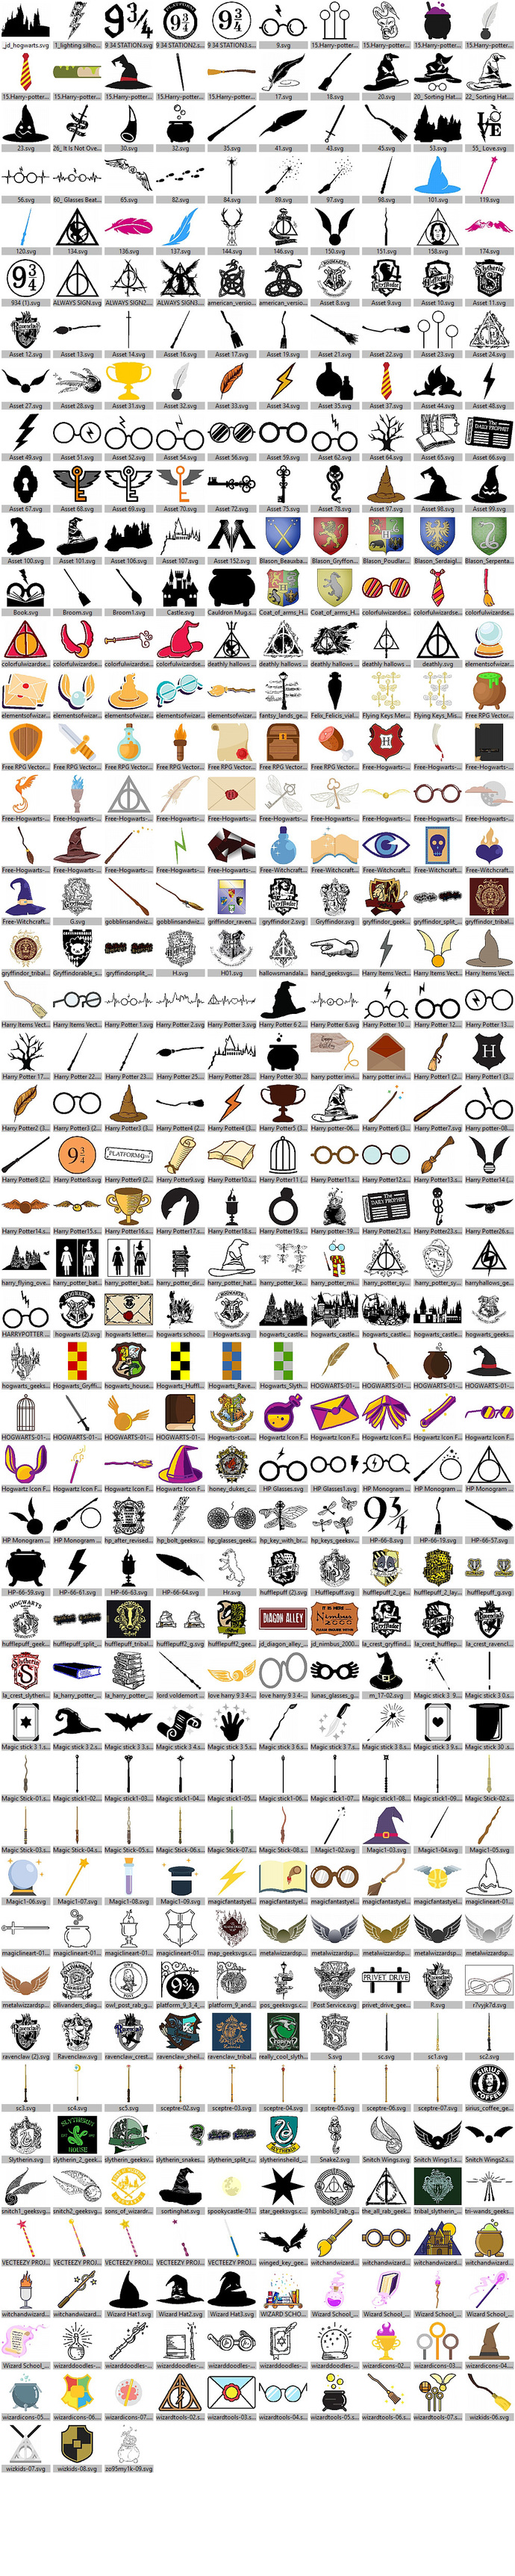 Harry Potter Clipart - Creativity Images Illustrations